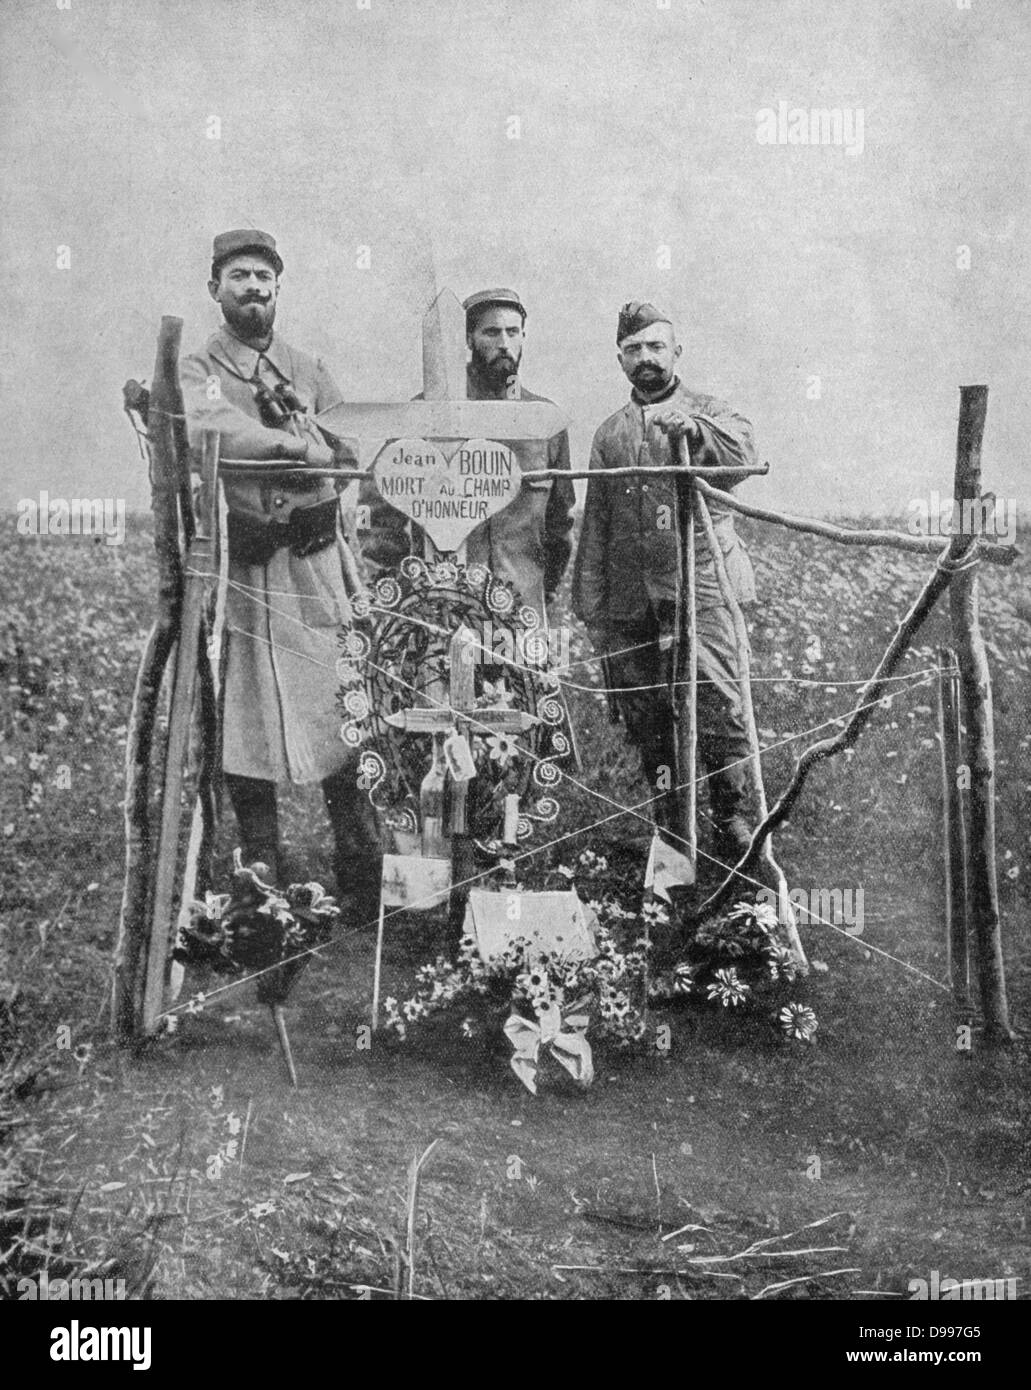 World War I 1914-1918: Grave of Jean Bouin (1888-20 September 1914) French Olympic runner and Rugby Union footballer, - Stock Image